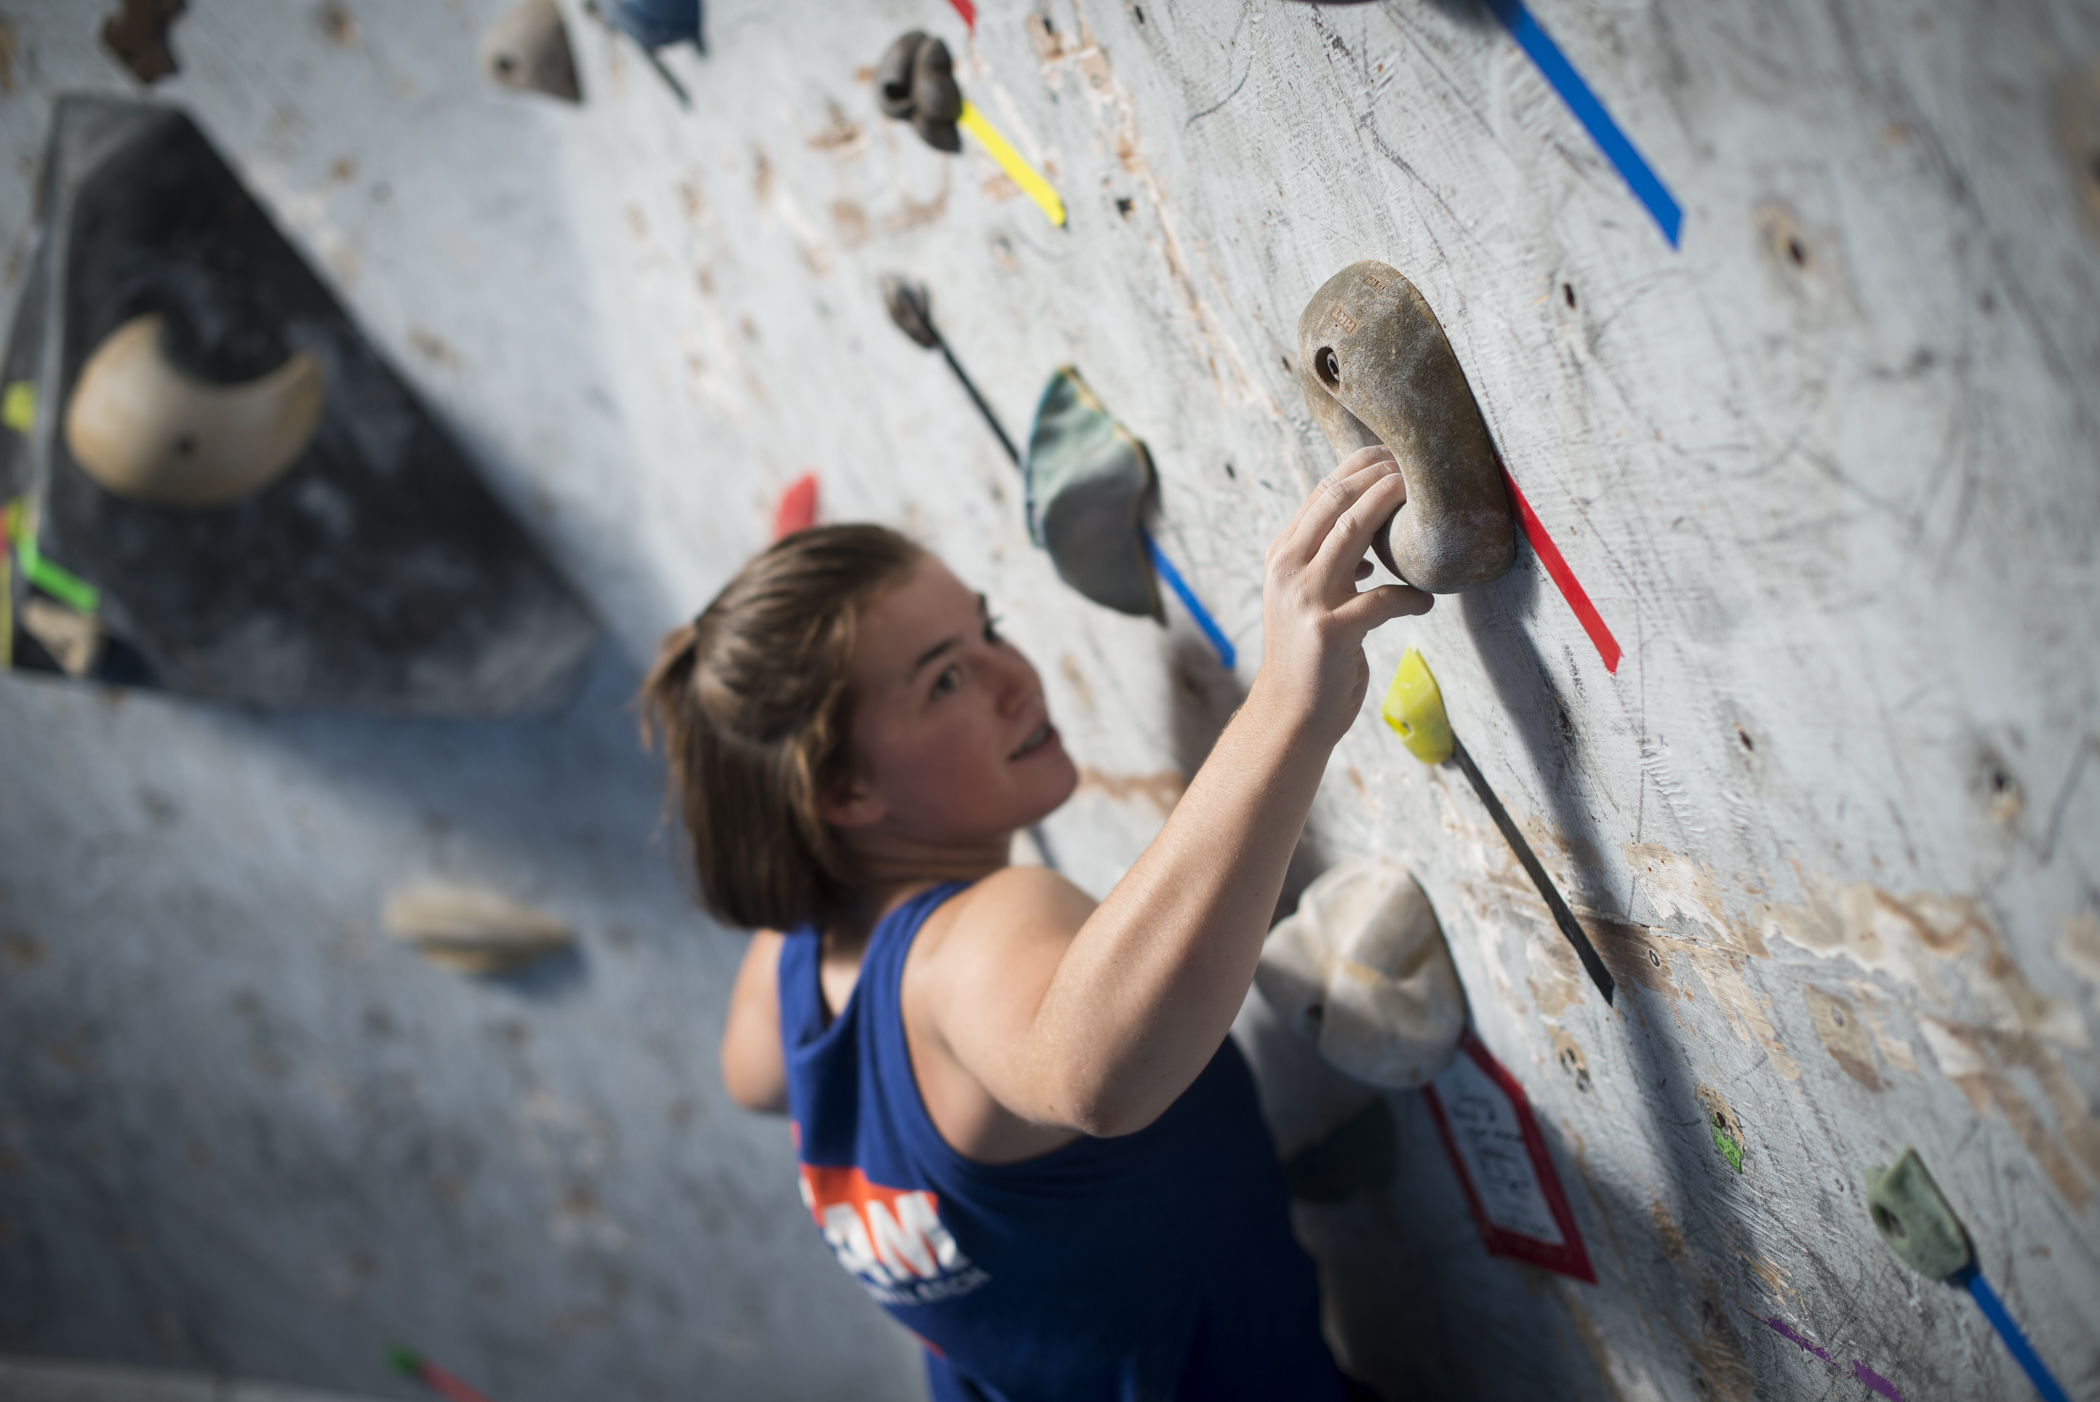 USAC Bouldering Competition-Oct. 21, 2017